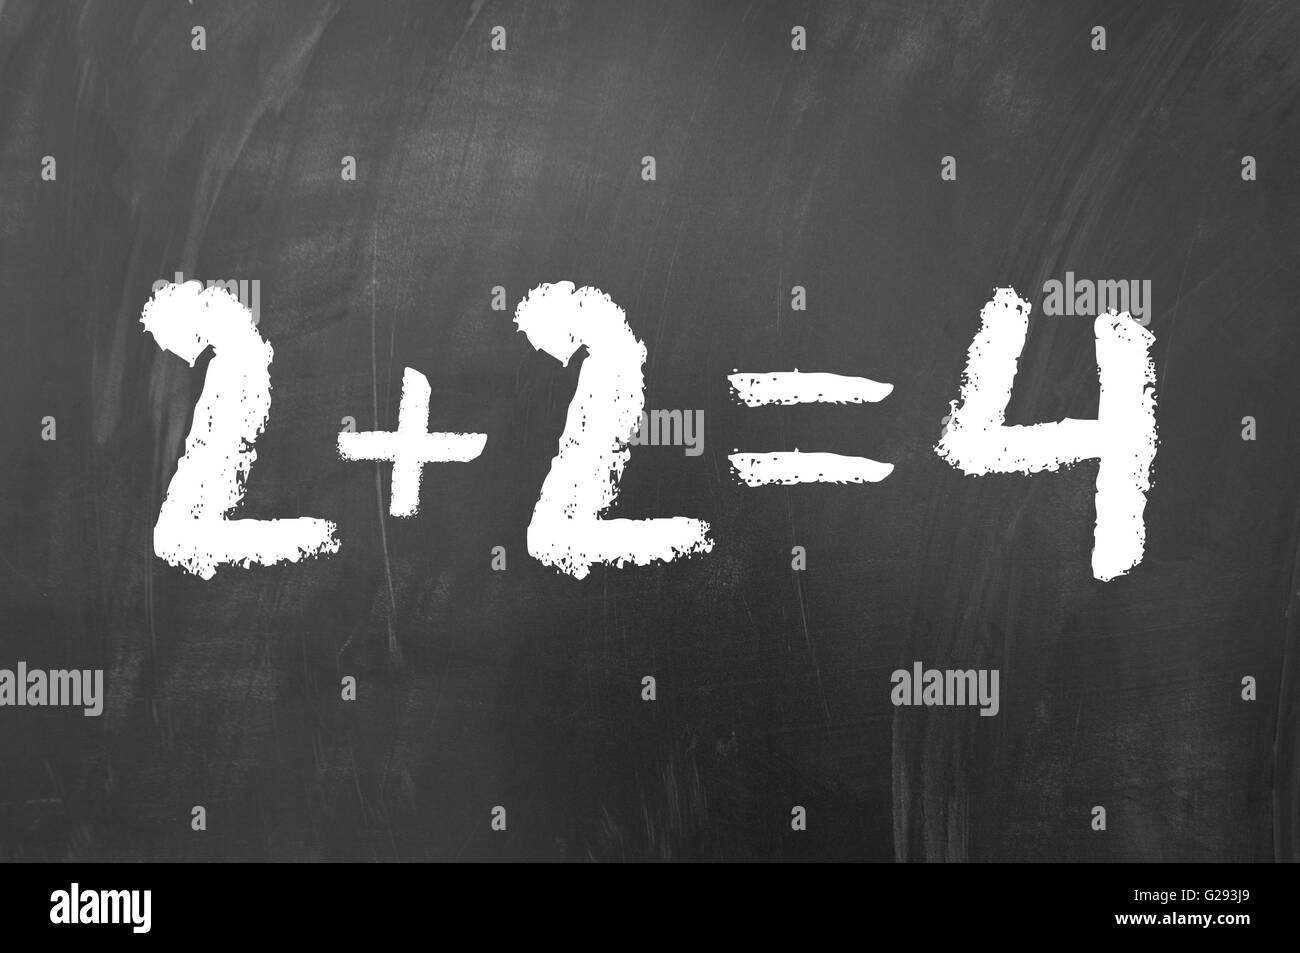 2 plus 2 equals 4 simple math problem solved on a school blackboard ...